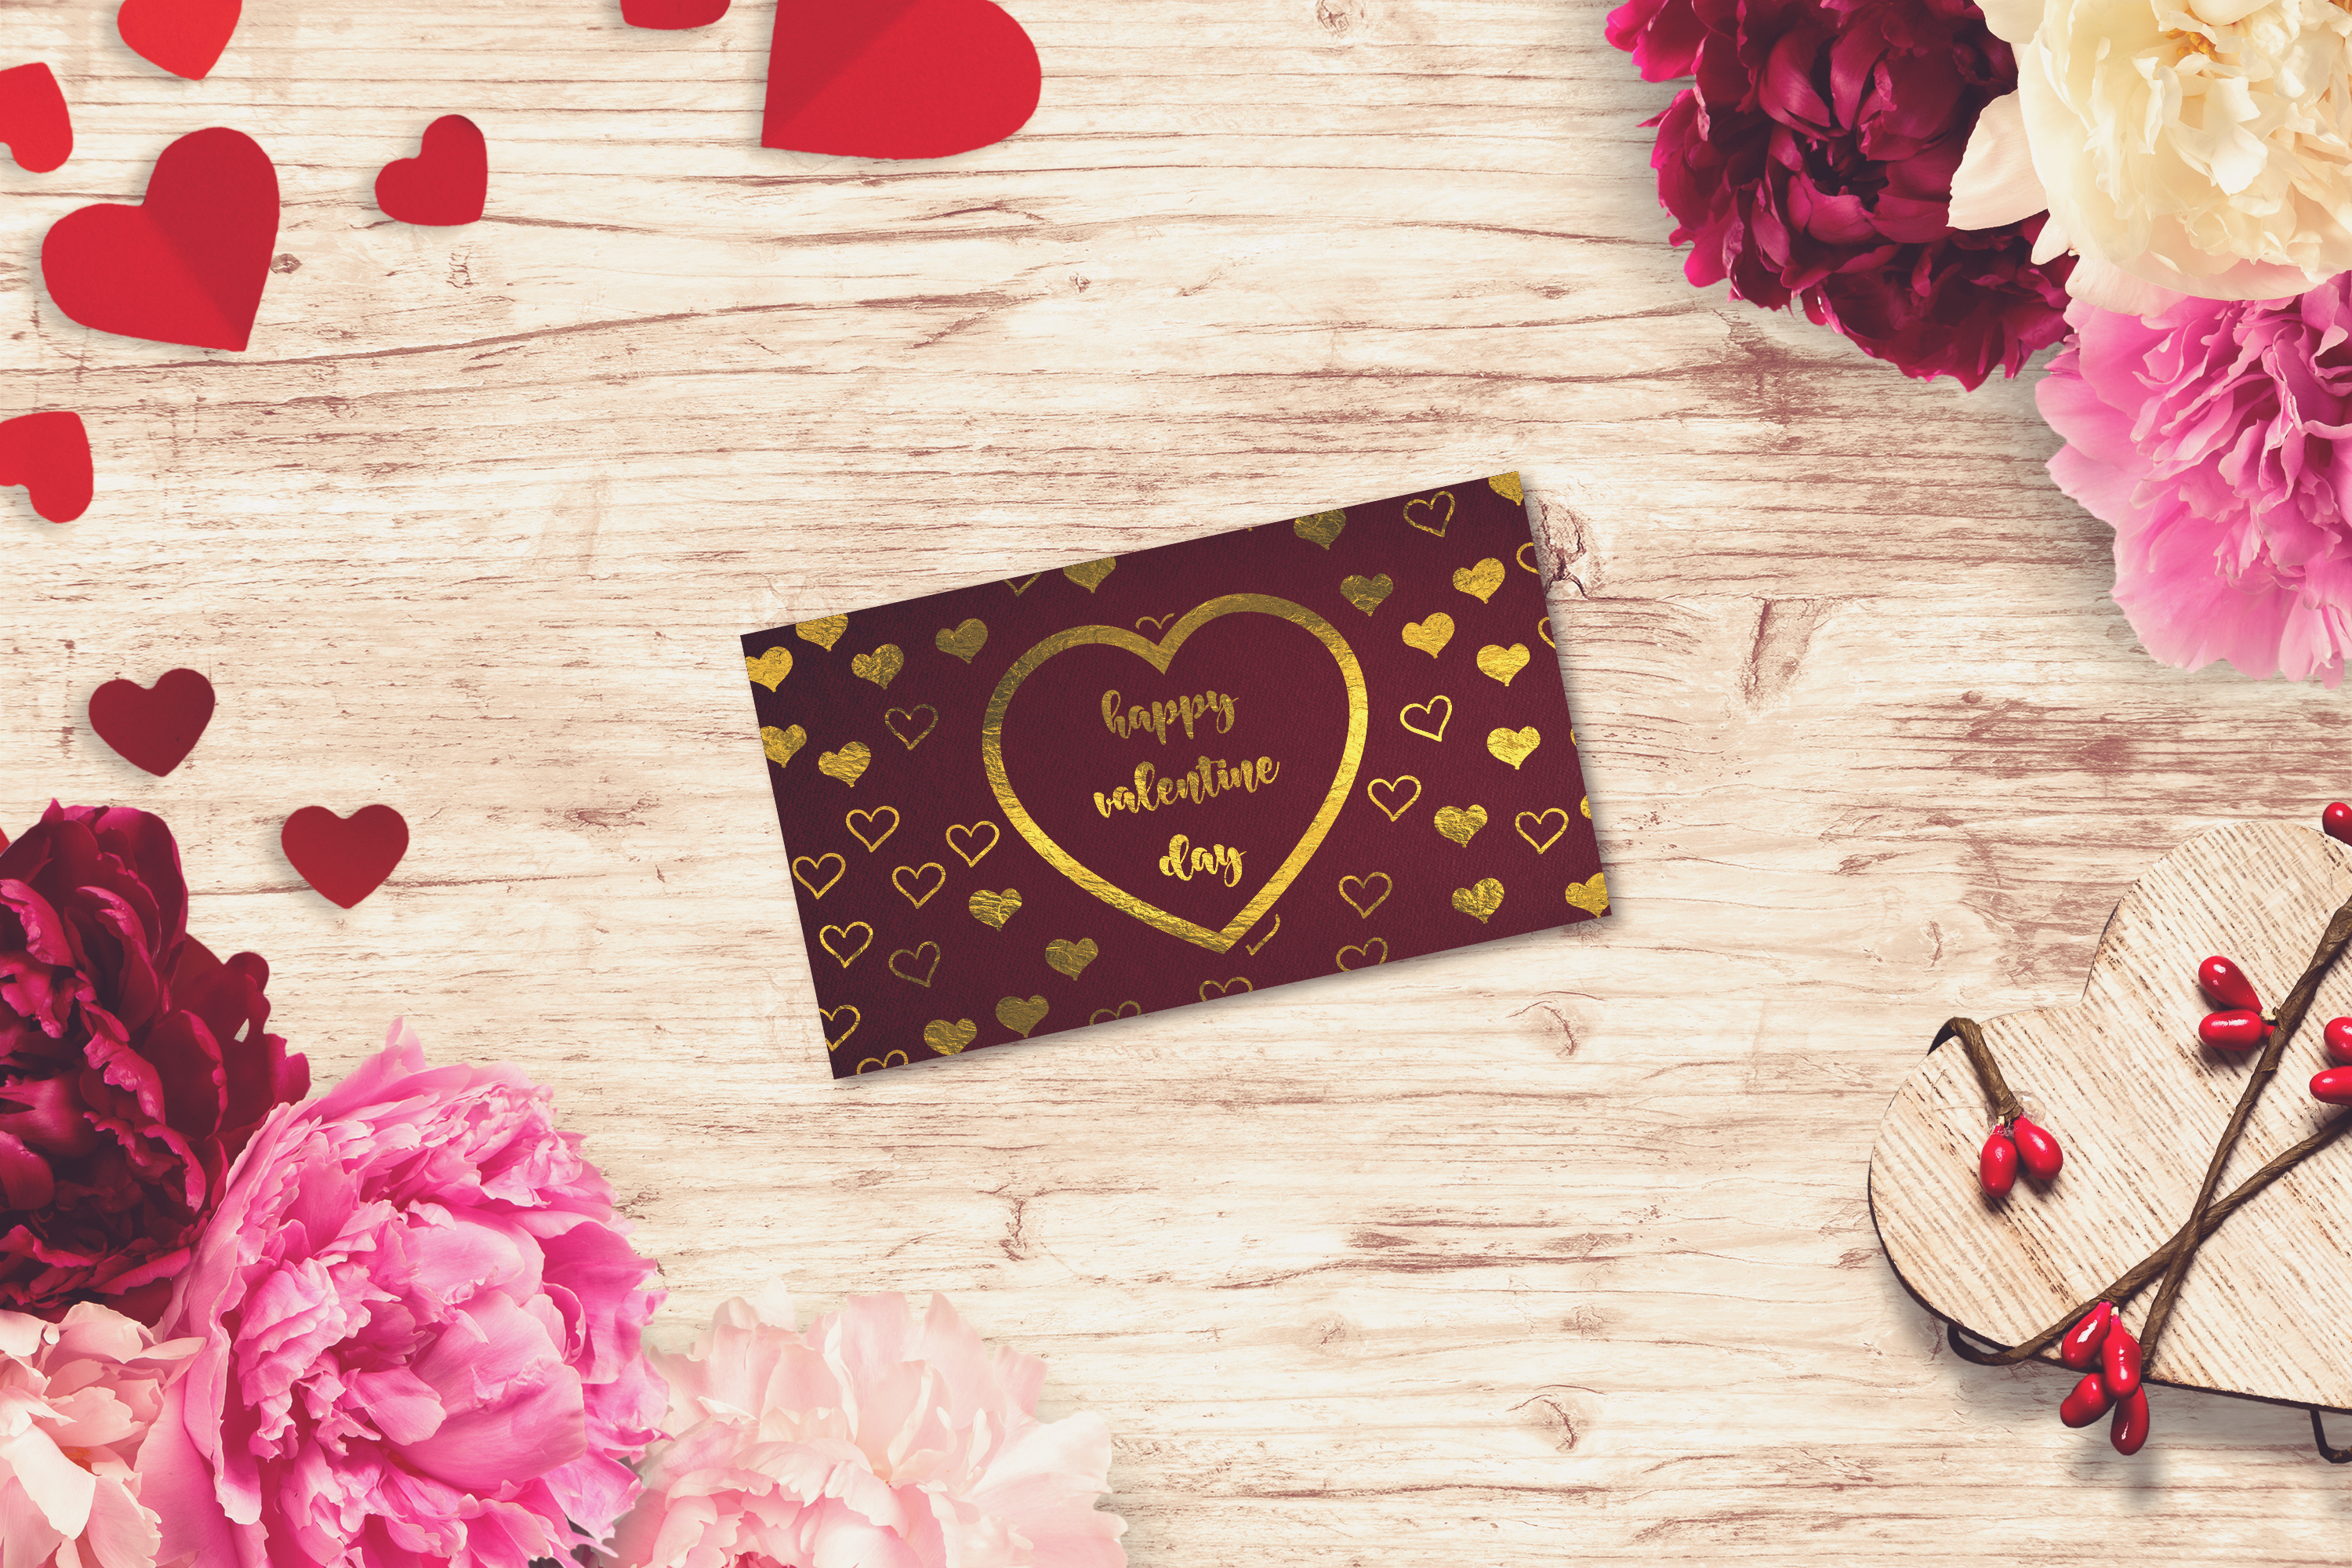 Valentine Card Mock-up #16 example image 1